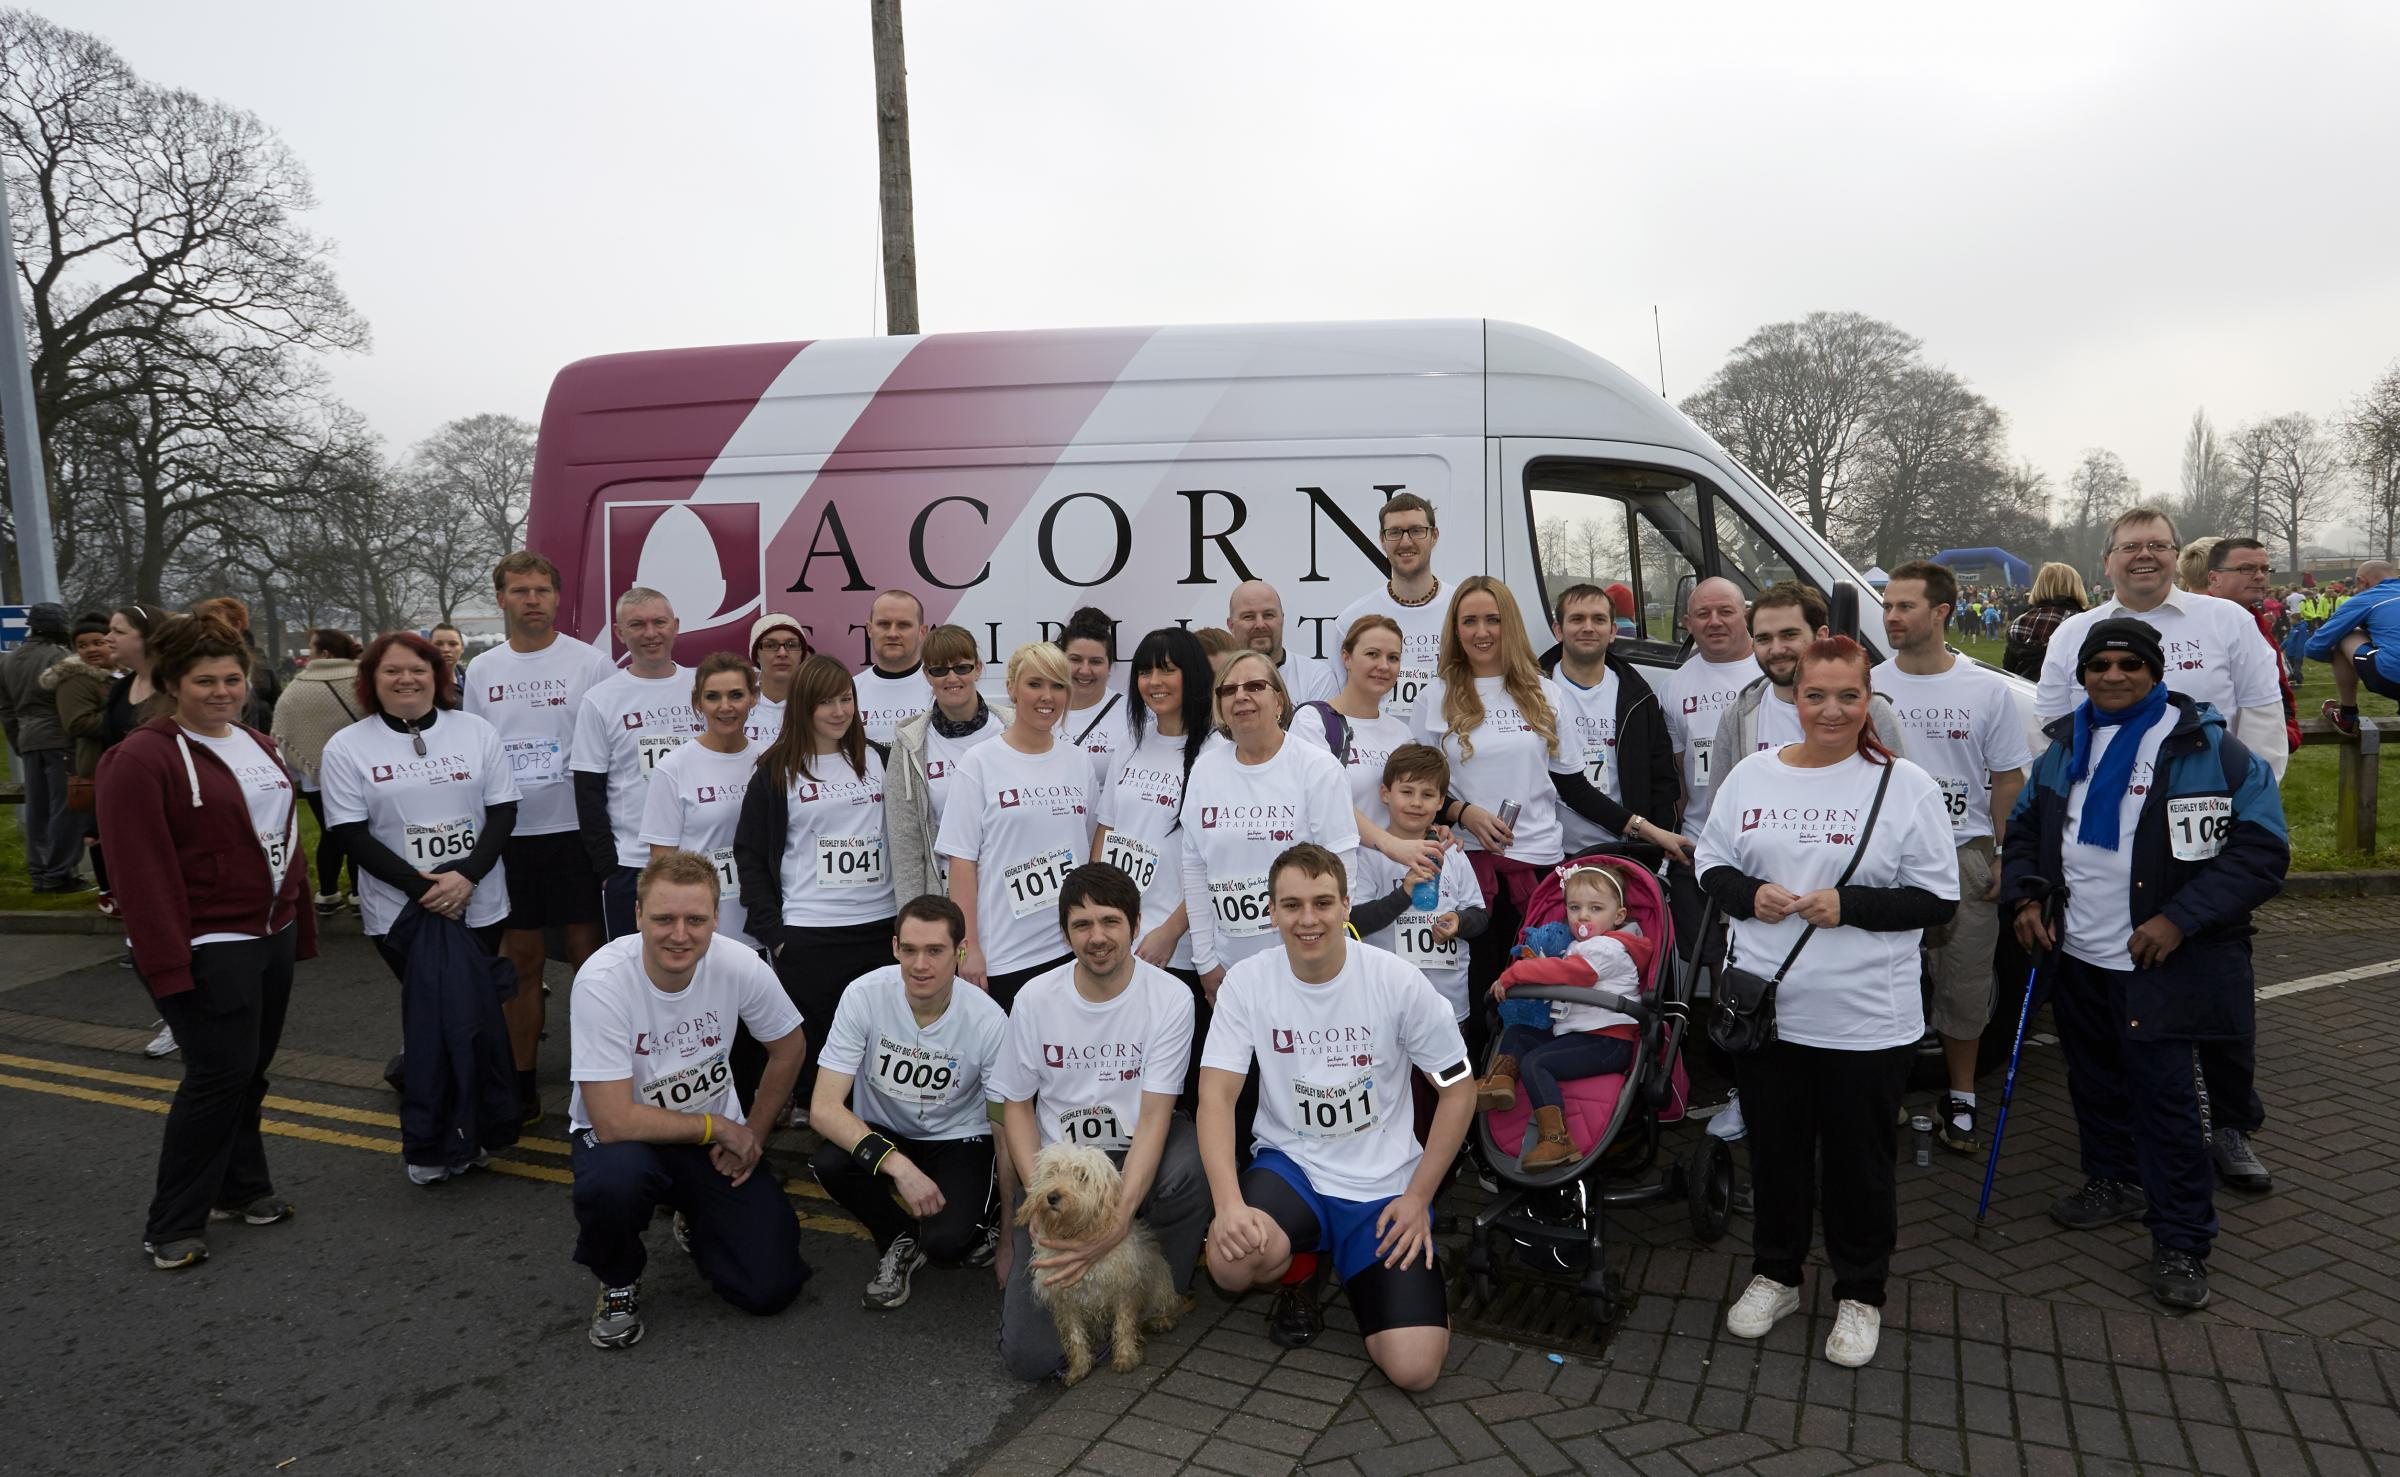 Some of the 100 staff of Acorn Stairlifts who took part in the Keighley BigK 10k run